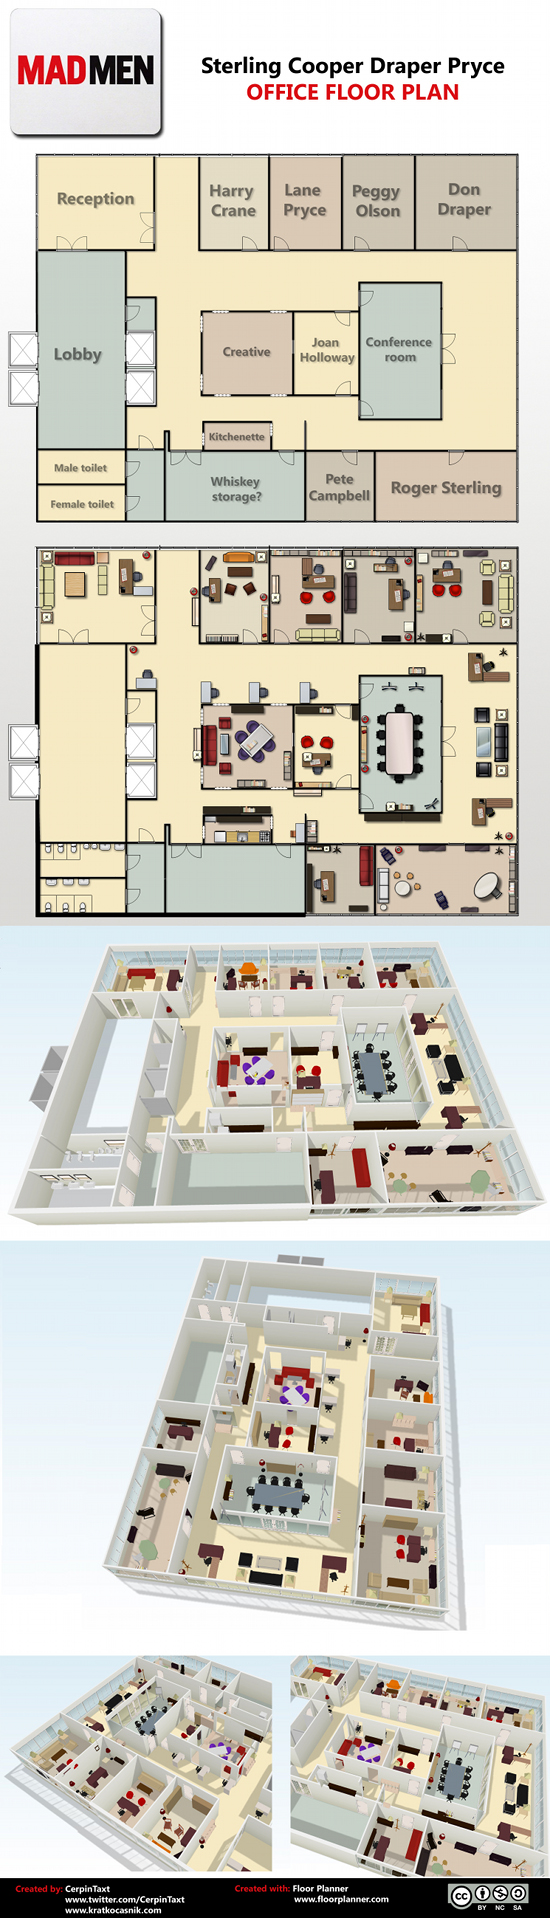 the office floor plan. I\u0027ve Never Seen An Episode, But If My Twitter Stream Has Taught Me Anything, It\u0027s That Many Of You Will Enjoy This Floor Plan The Mad Men Office By !